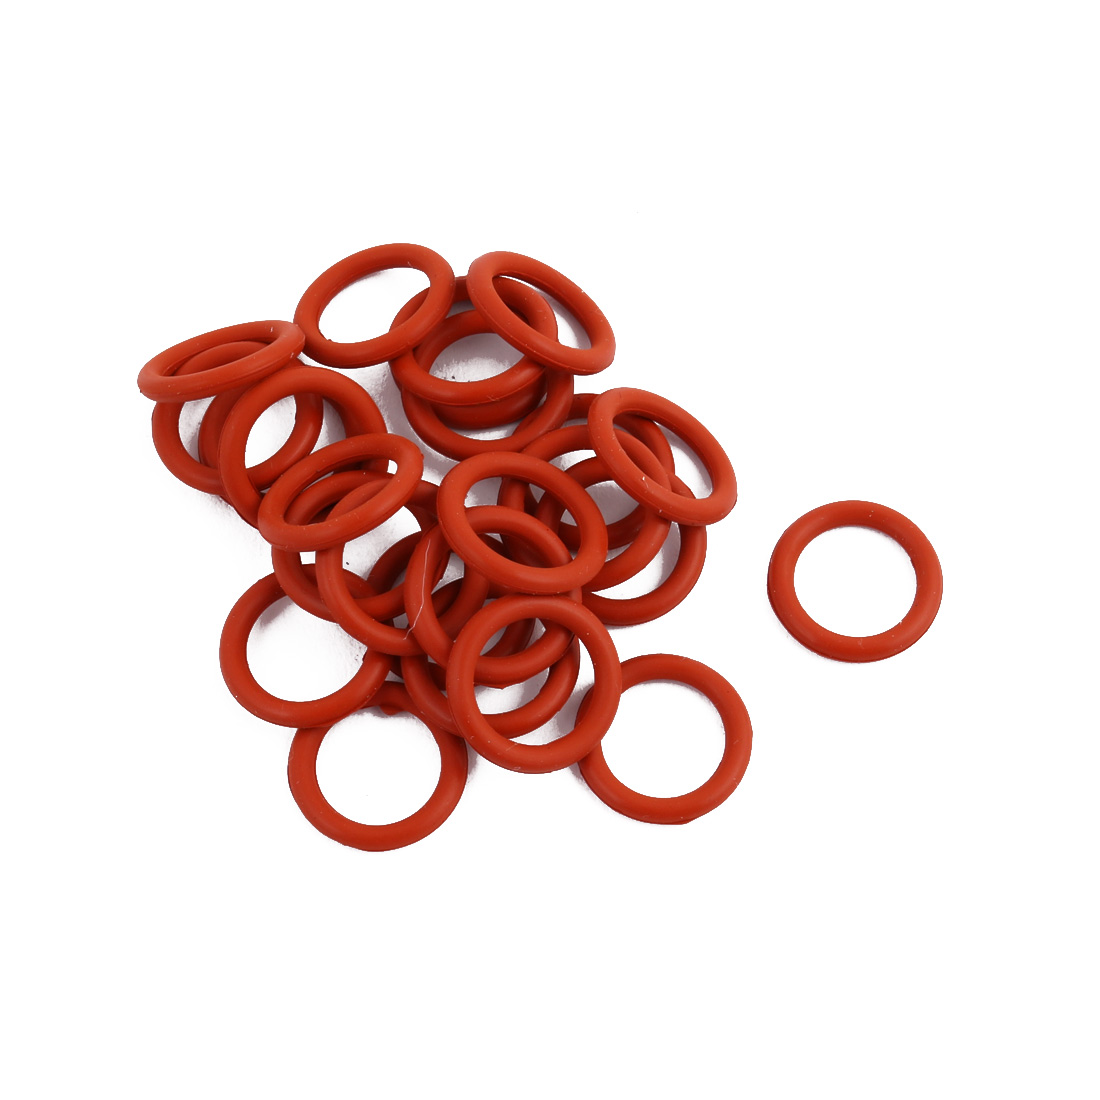 25pcs Red Round Nitrile Butadiene Rubber NBR O-Ring 13mm OD 1.9mm Width